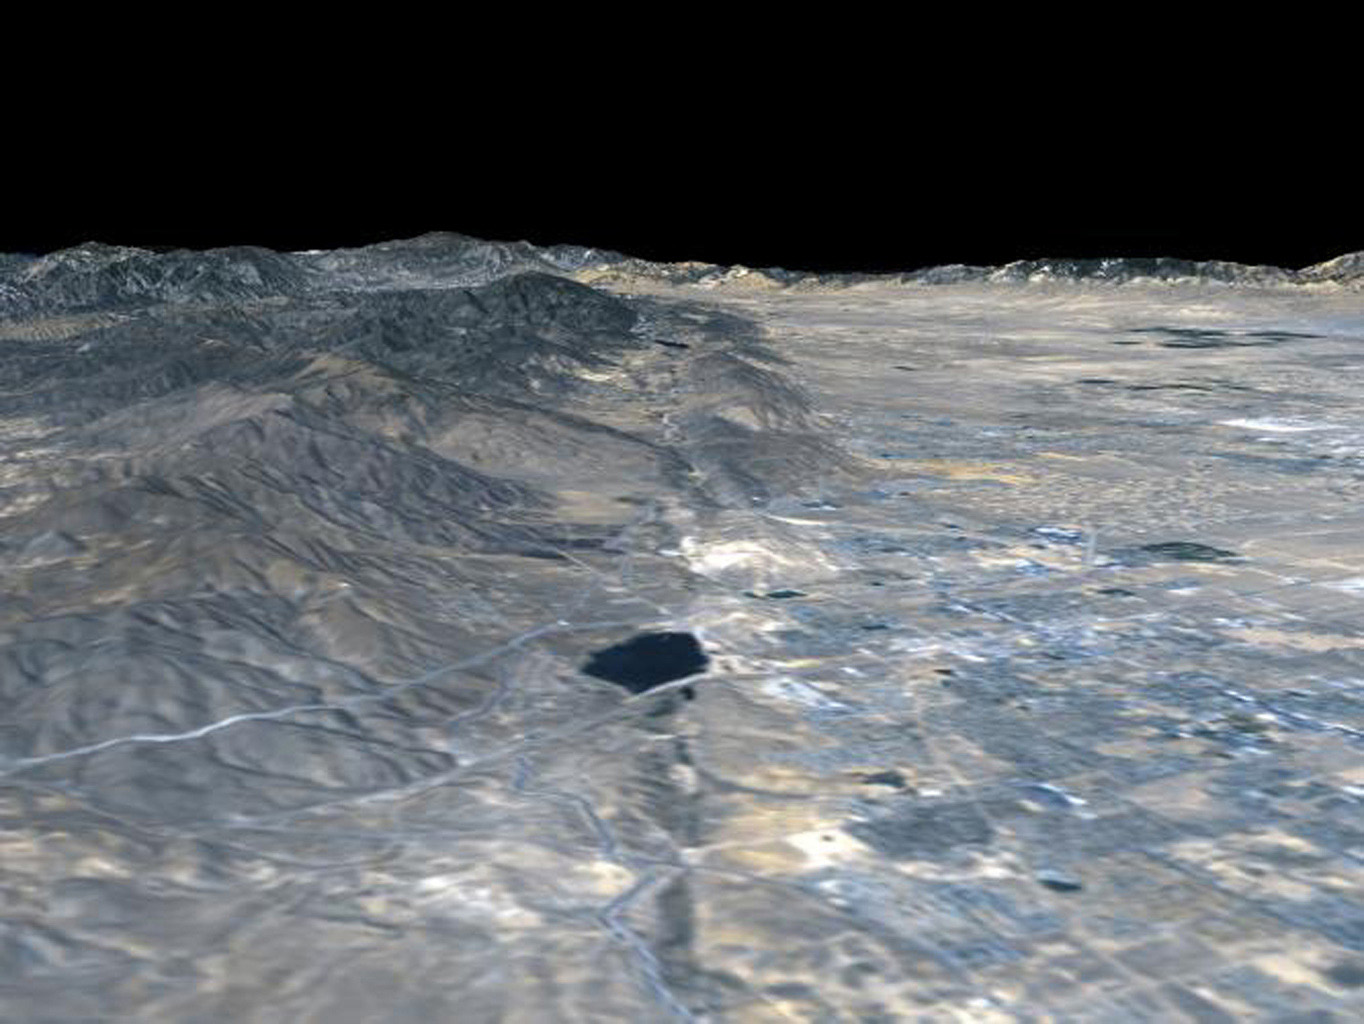 The prominent linear feature straight down the center of this perspective view from NASA's Shuttle Radar Topography Mission is the San Andreas Fault. This segment of the fault lies near the city of Palmdale, CA, about 60 kilometers north of Los Angeles.